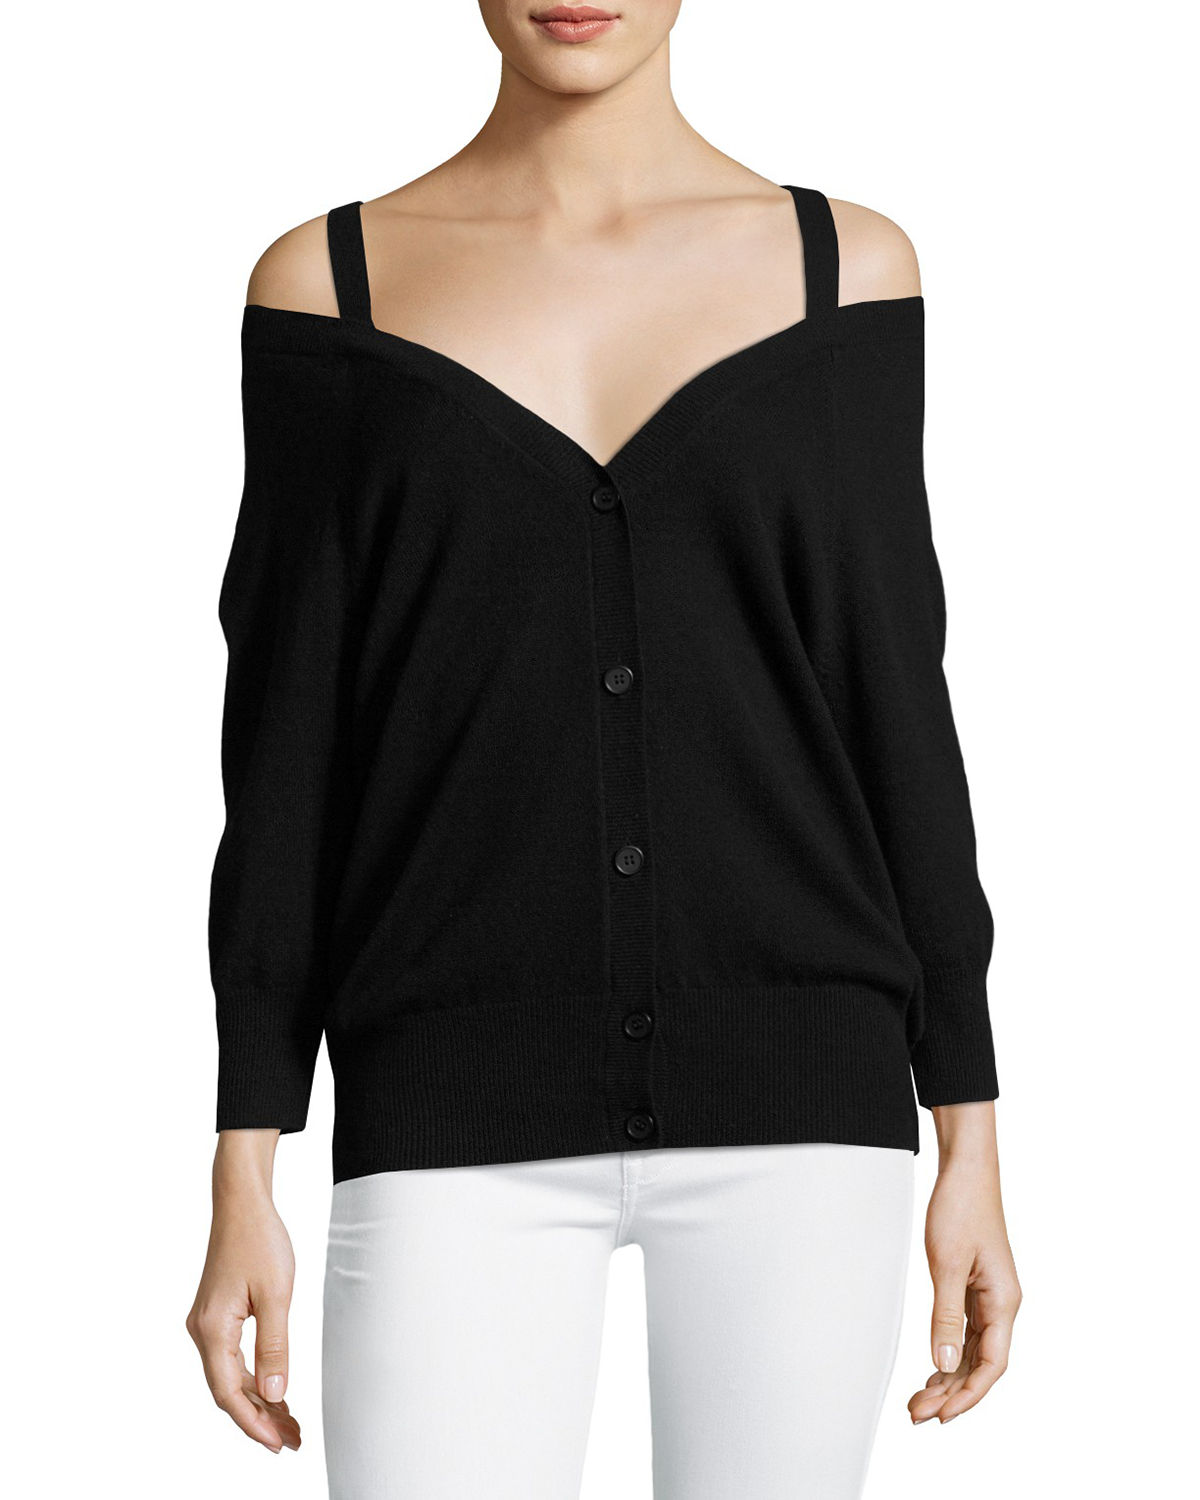 Saline B Cashmere Cold-Shoulder Cardigan